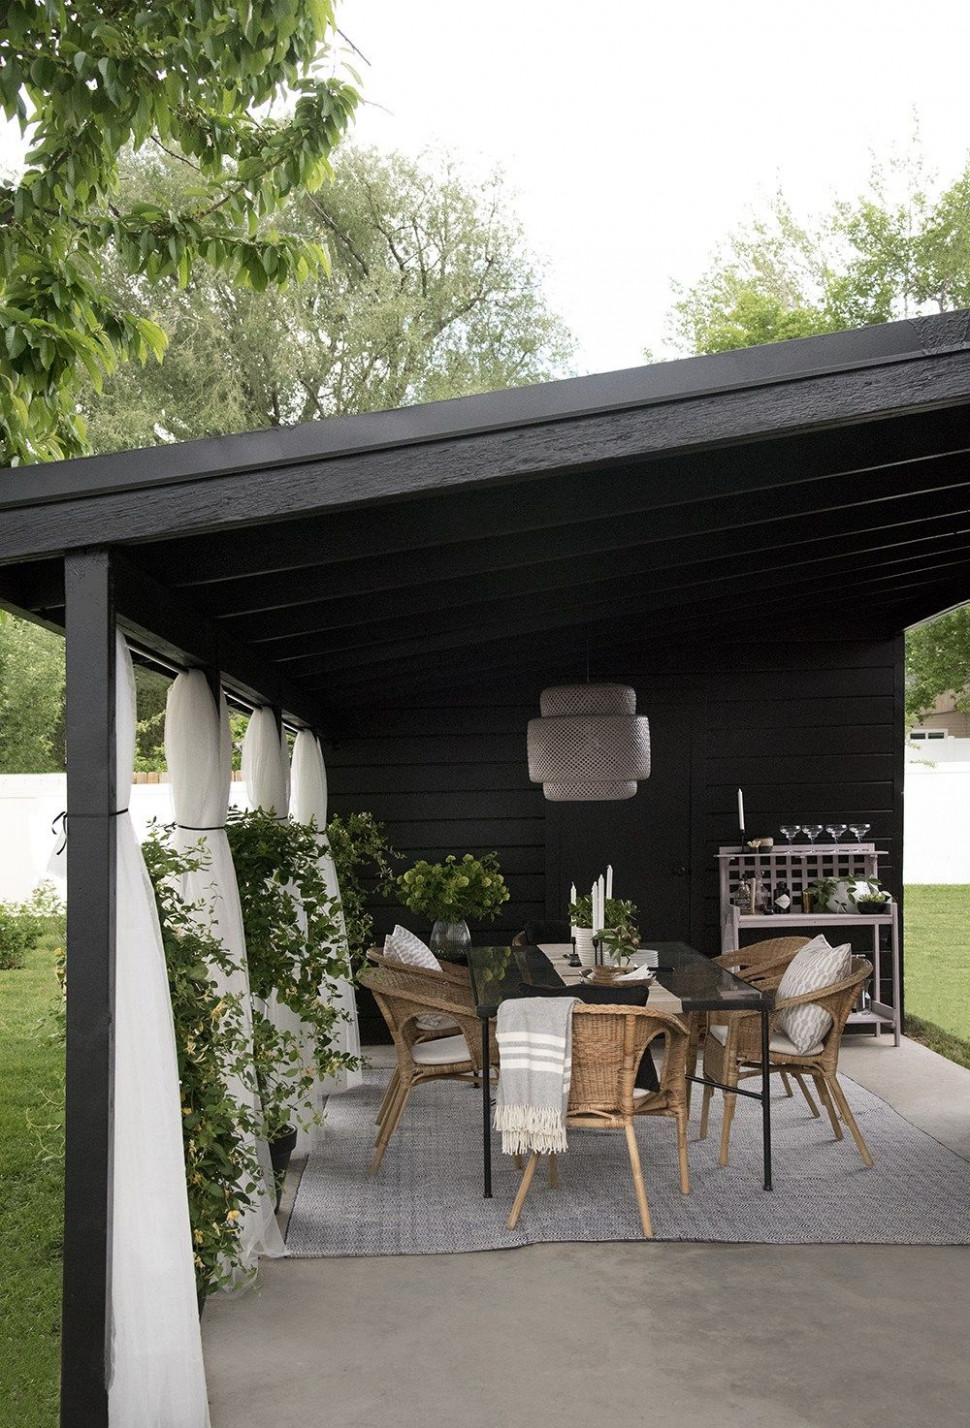 Painted Carport Makeover Room For Tuesday Blog | Patio ..